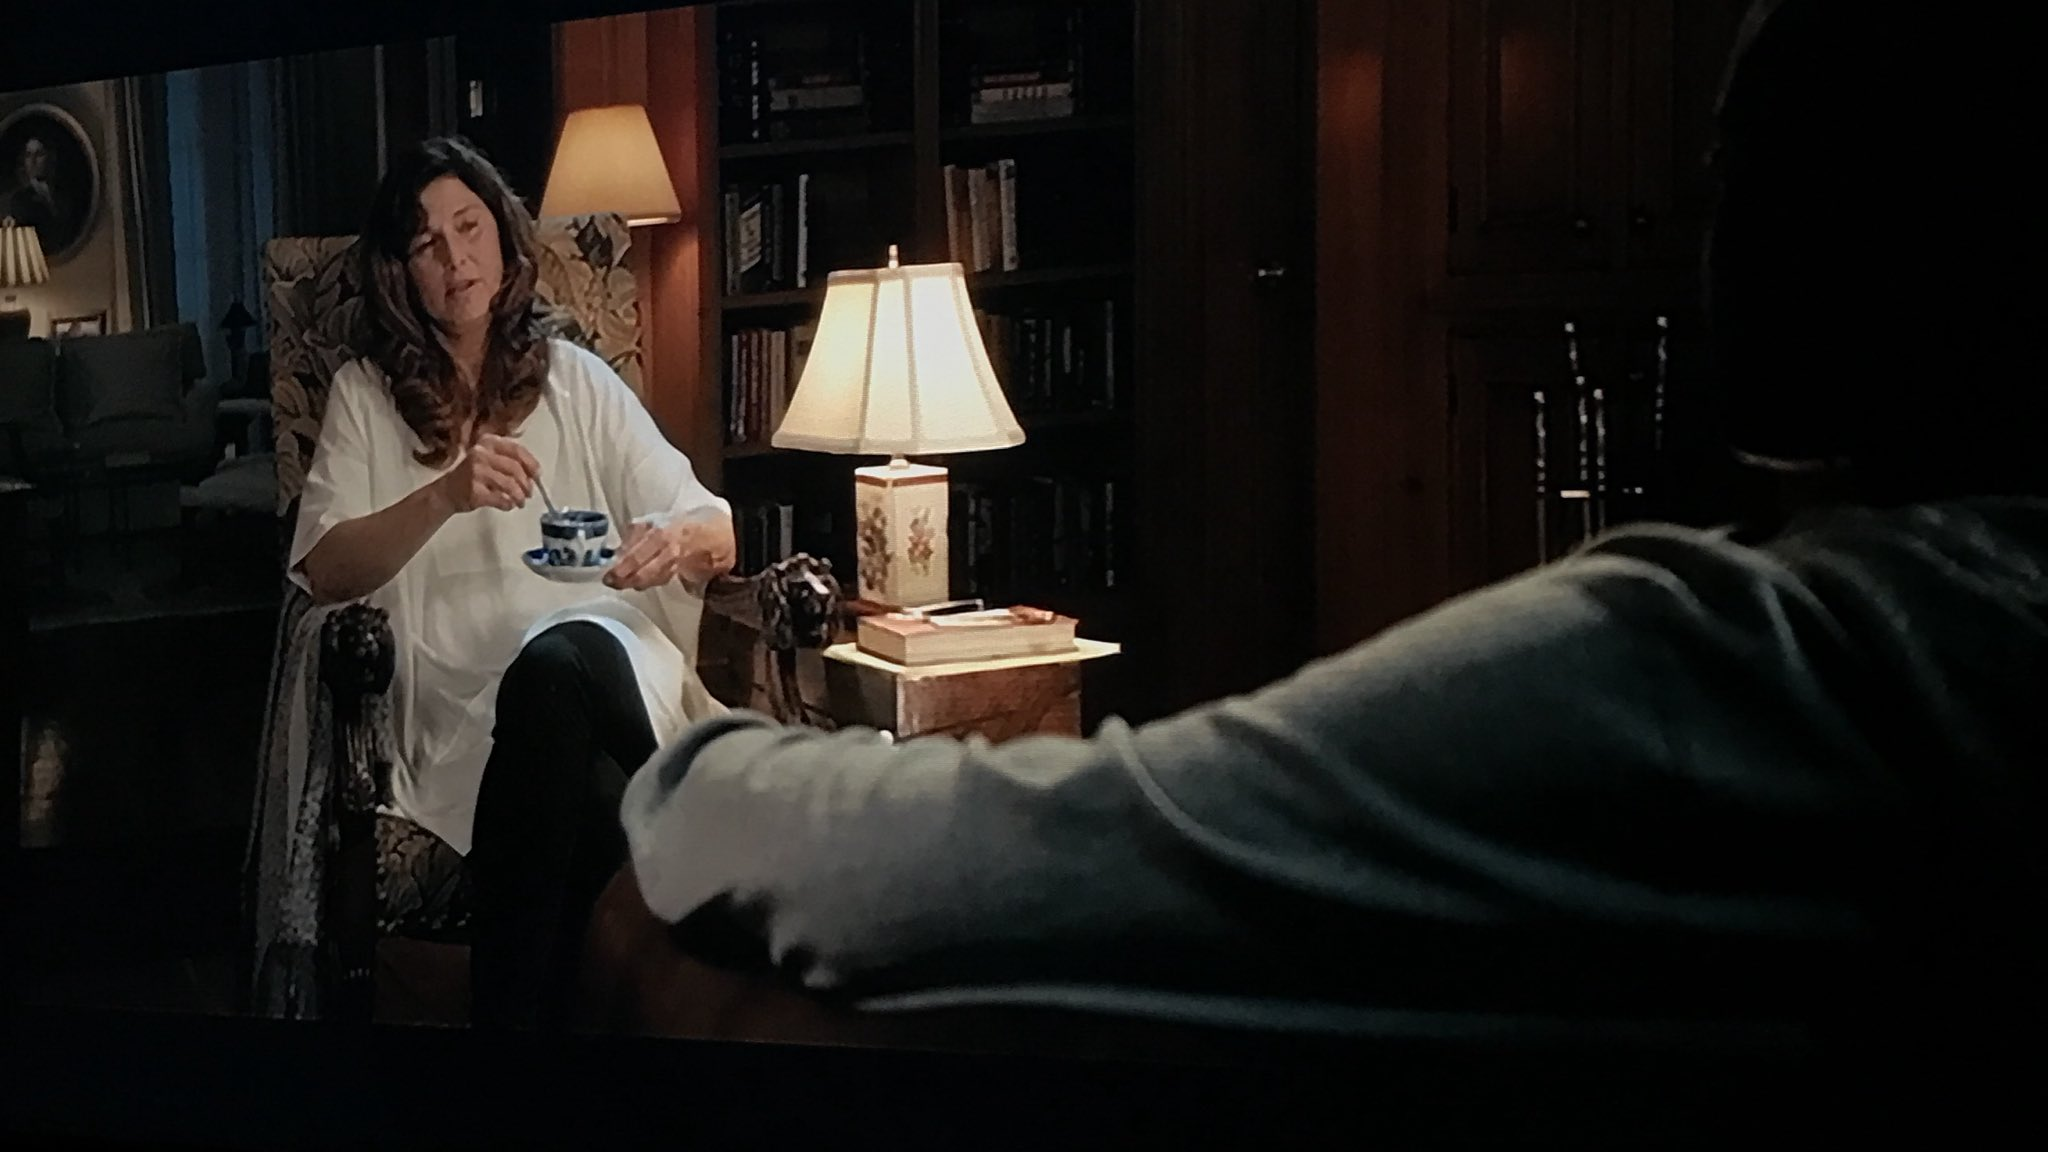 This Chris/Missy scene is supposed to be like Clarice/Hannibal in 'Silence of the Lambs' #GetOut Dir. Commentary https://t.co/jb8BMX8oQ3